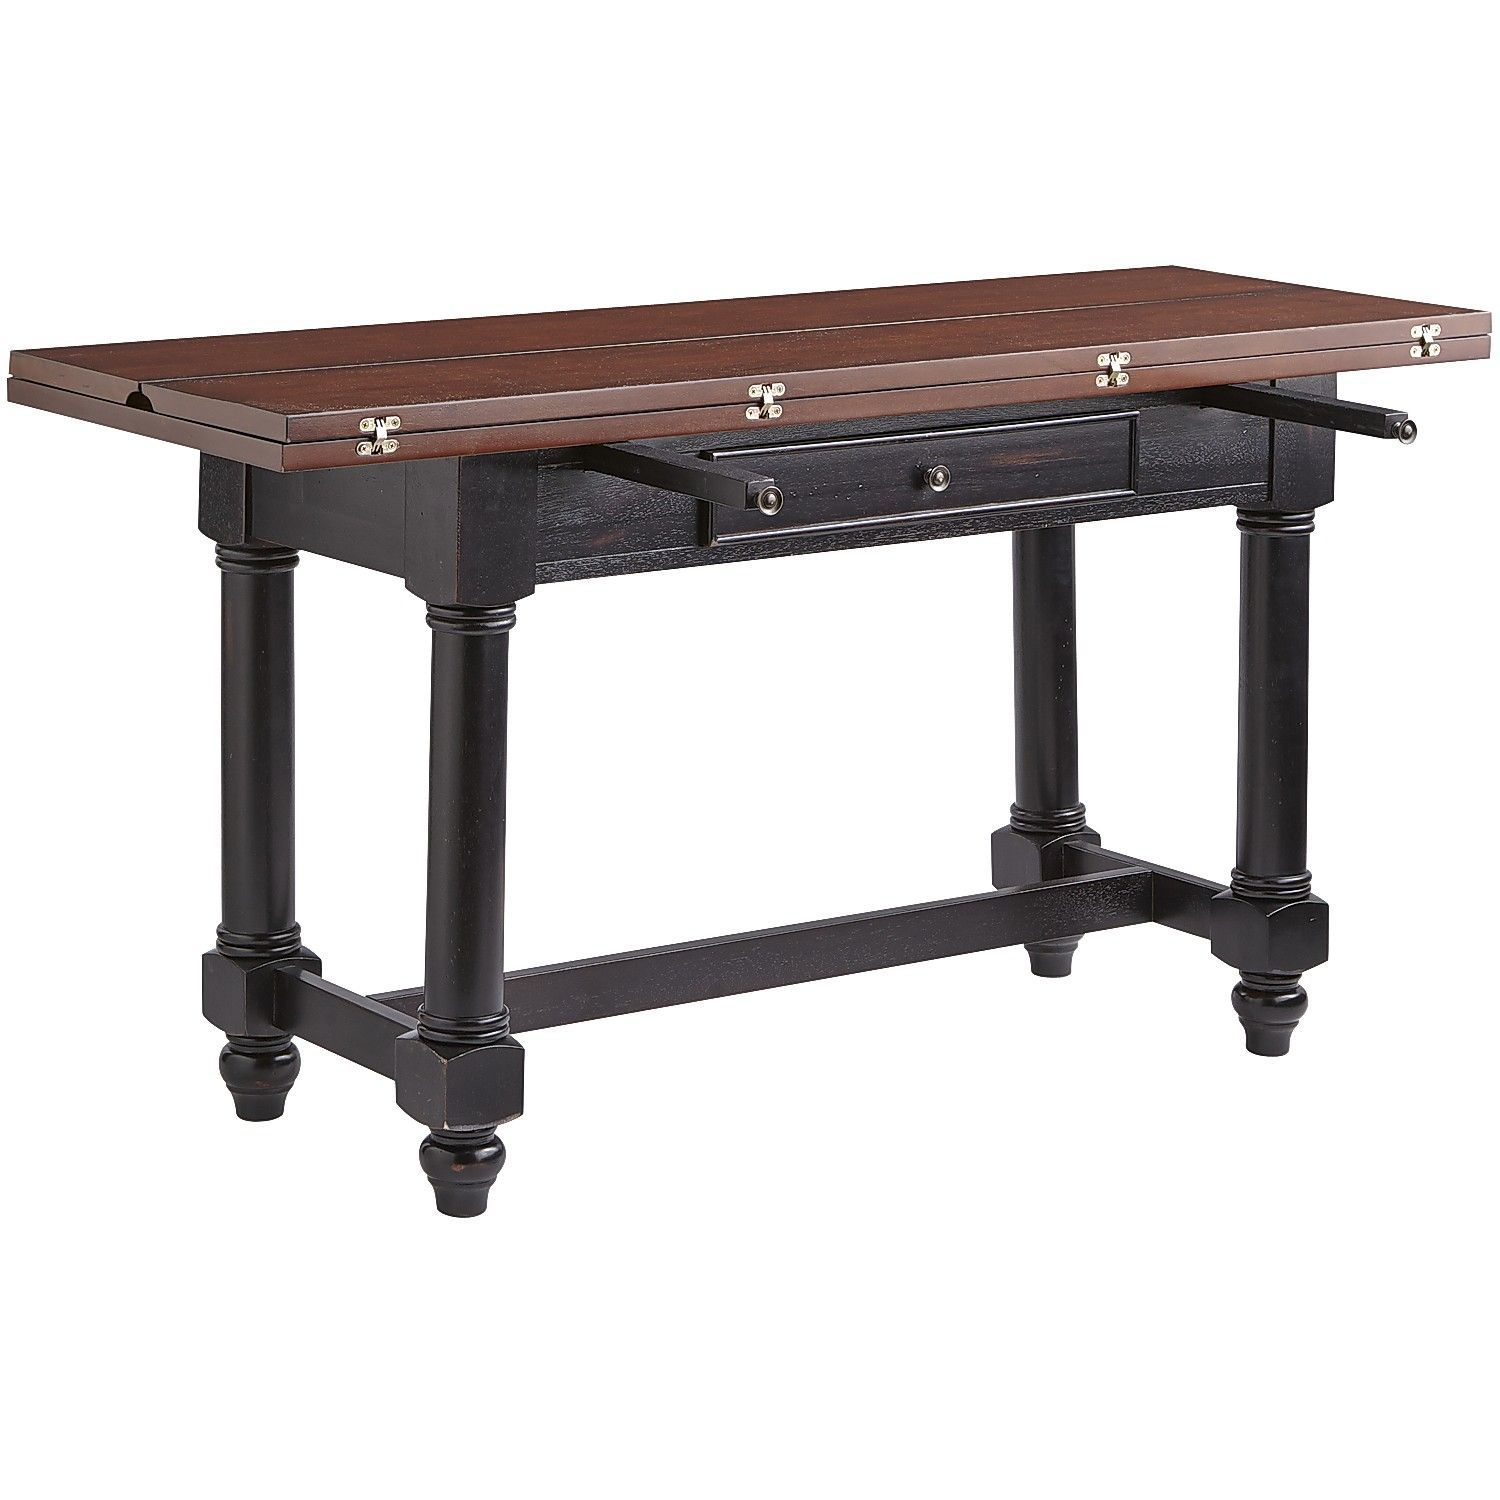 blake drop leaf table - pier 1 leaves fold over top, with support